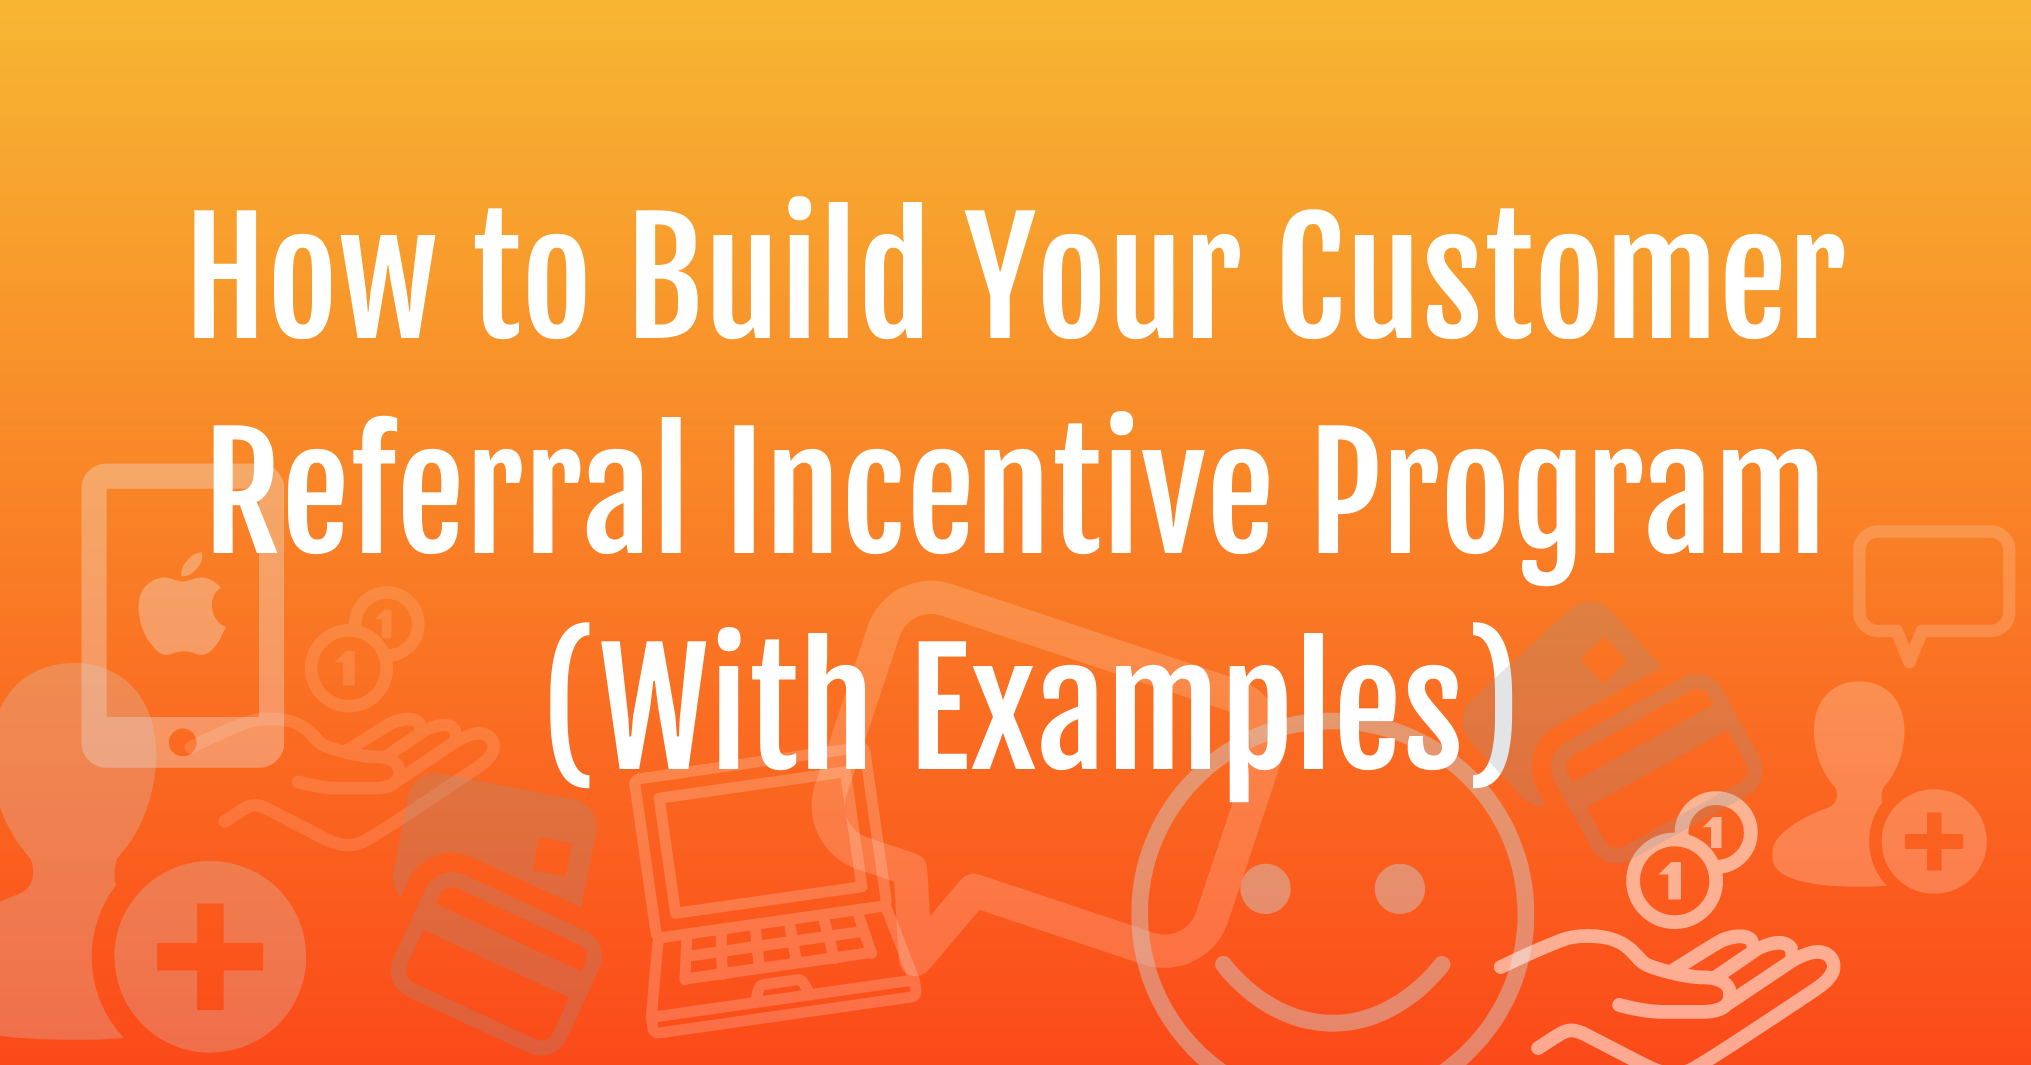 How to Build Your Customer Referral Incentive Program.